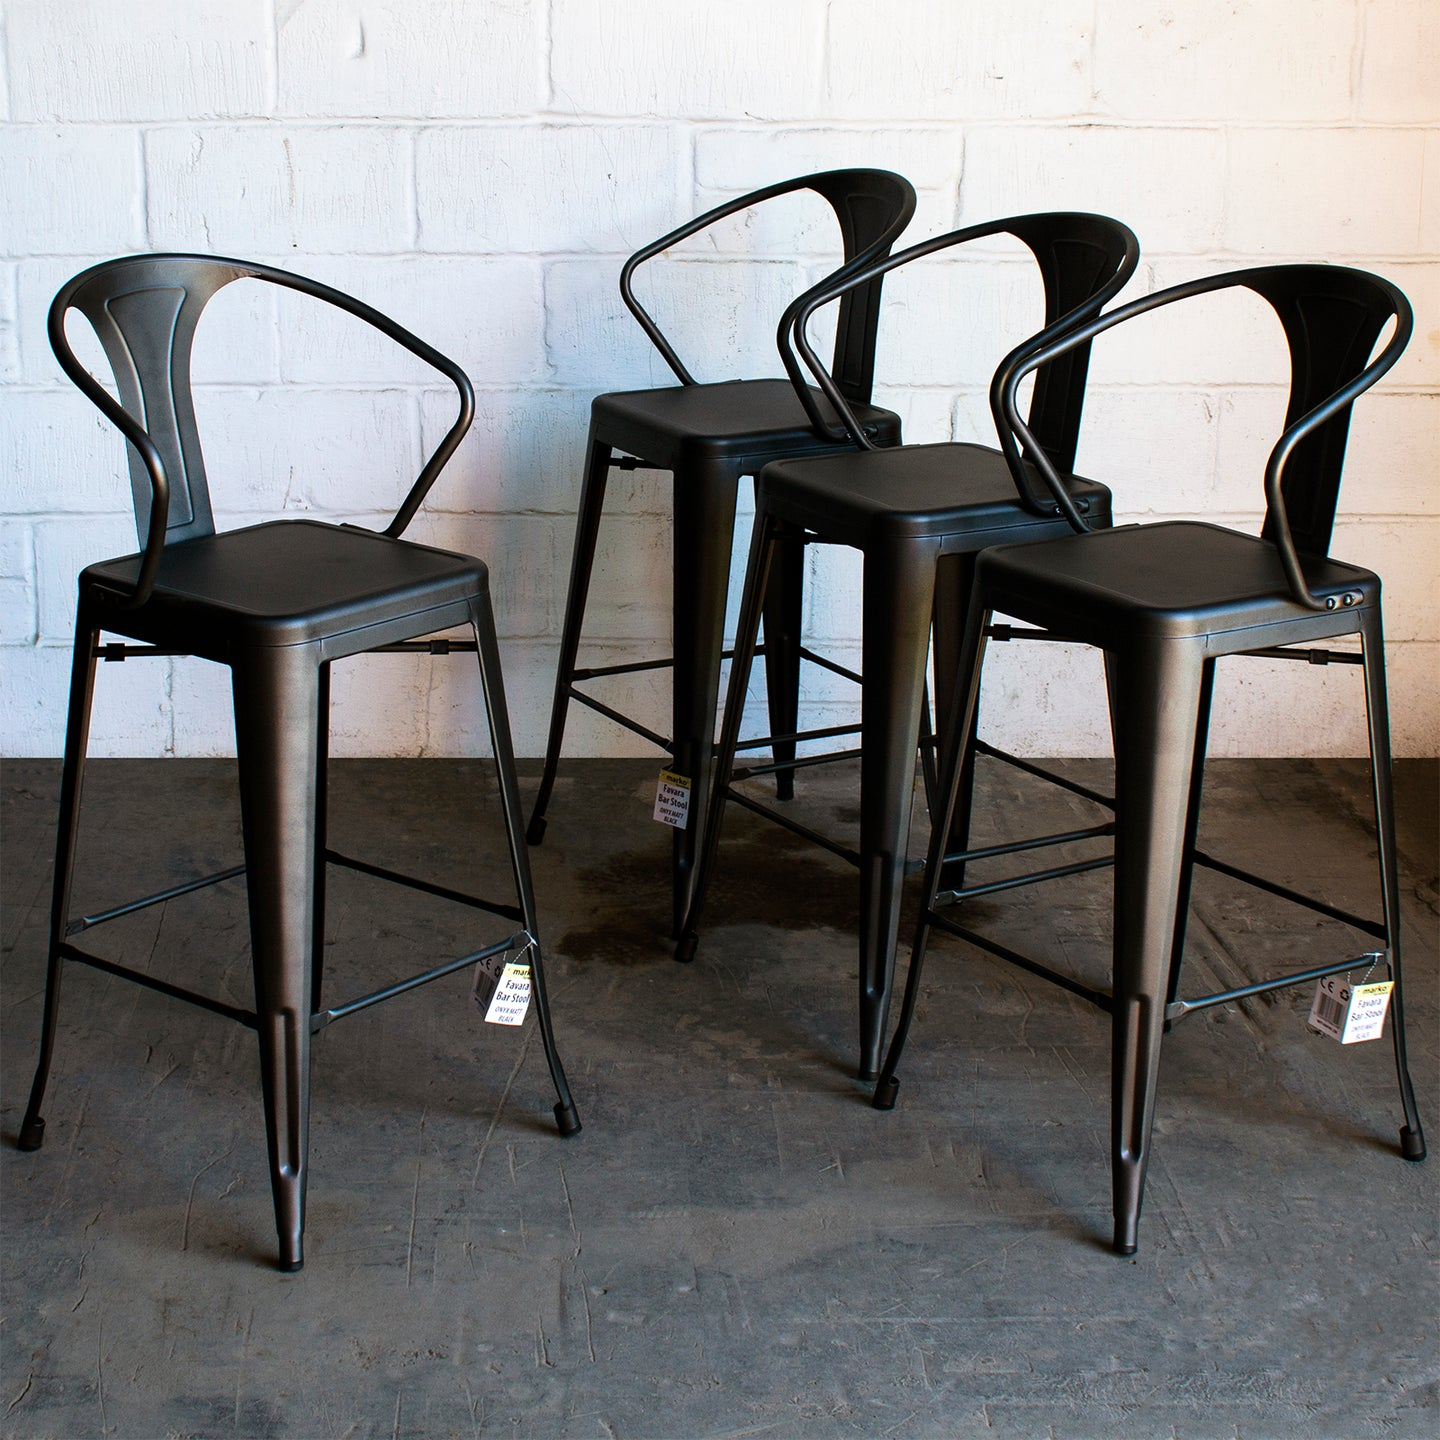 Favara Bar Stool - Onyx Matt Black